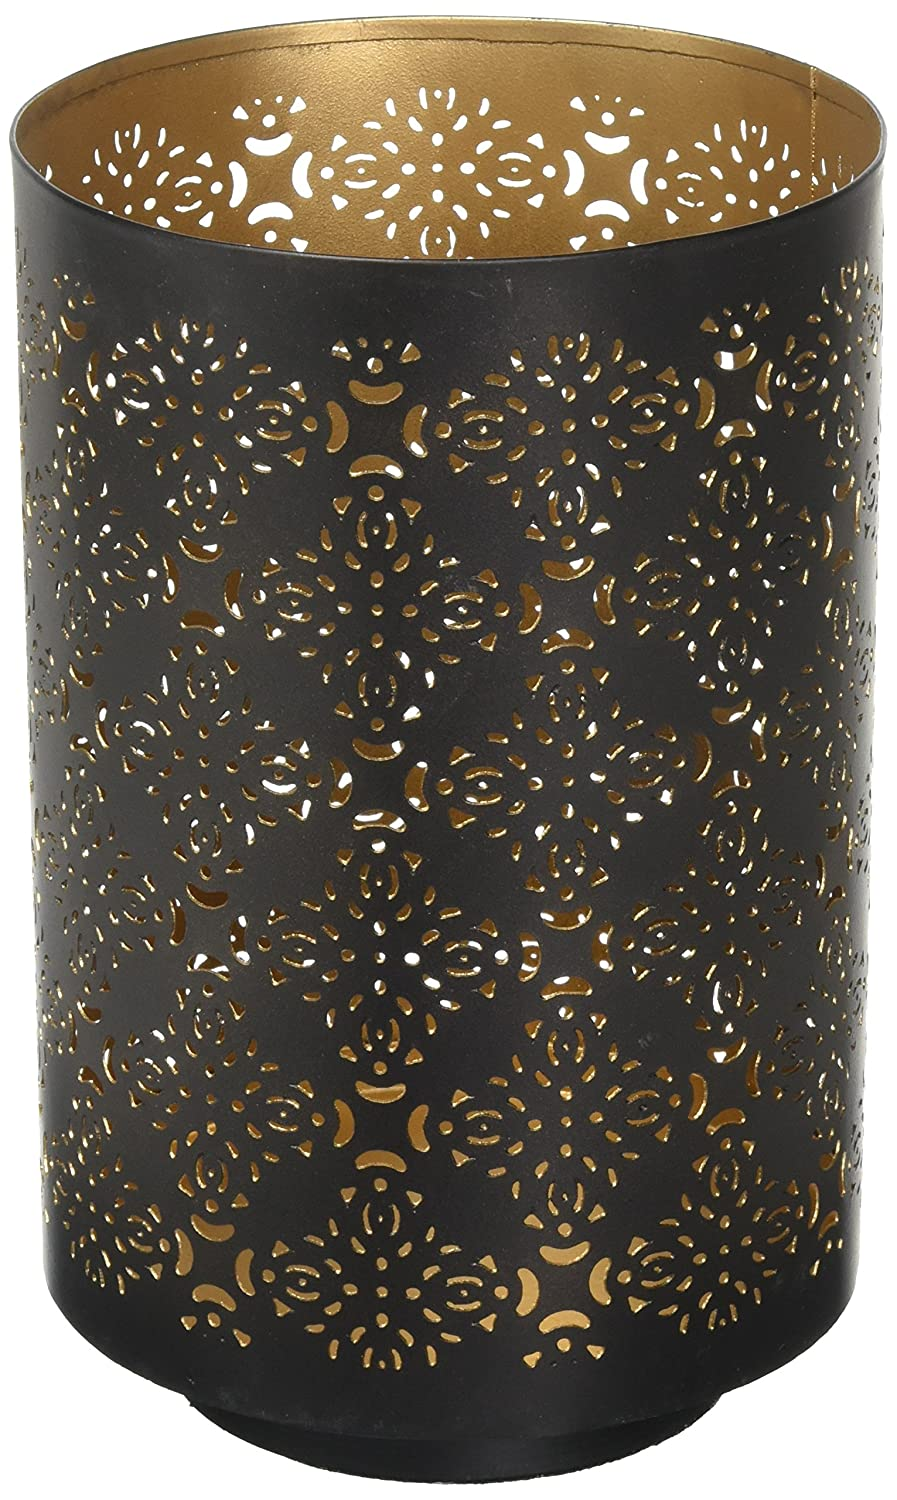 Hosley's 8 High Diamond Cut Candle Holder. Ideal GIFT for weddings, party, spa, reiki, meditation. P9 HG GLOBAL HTM4007817